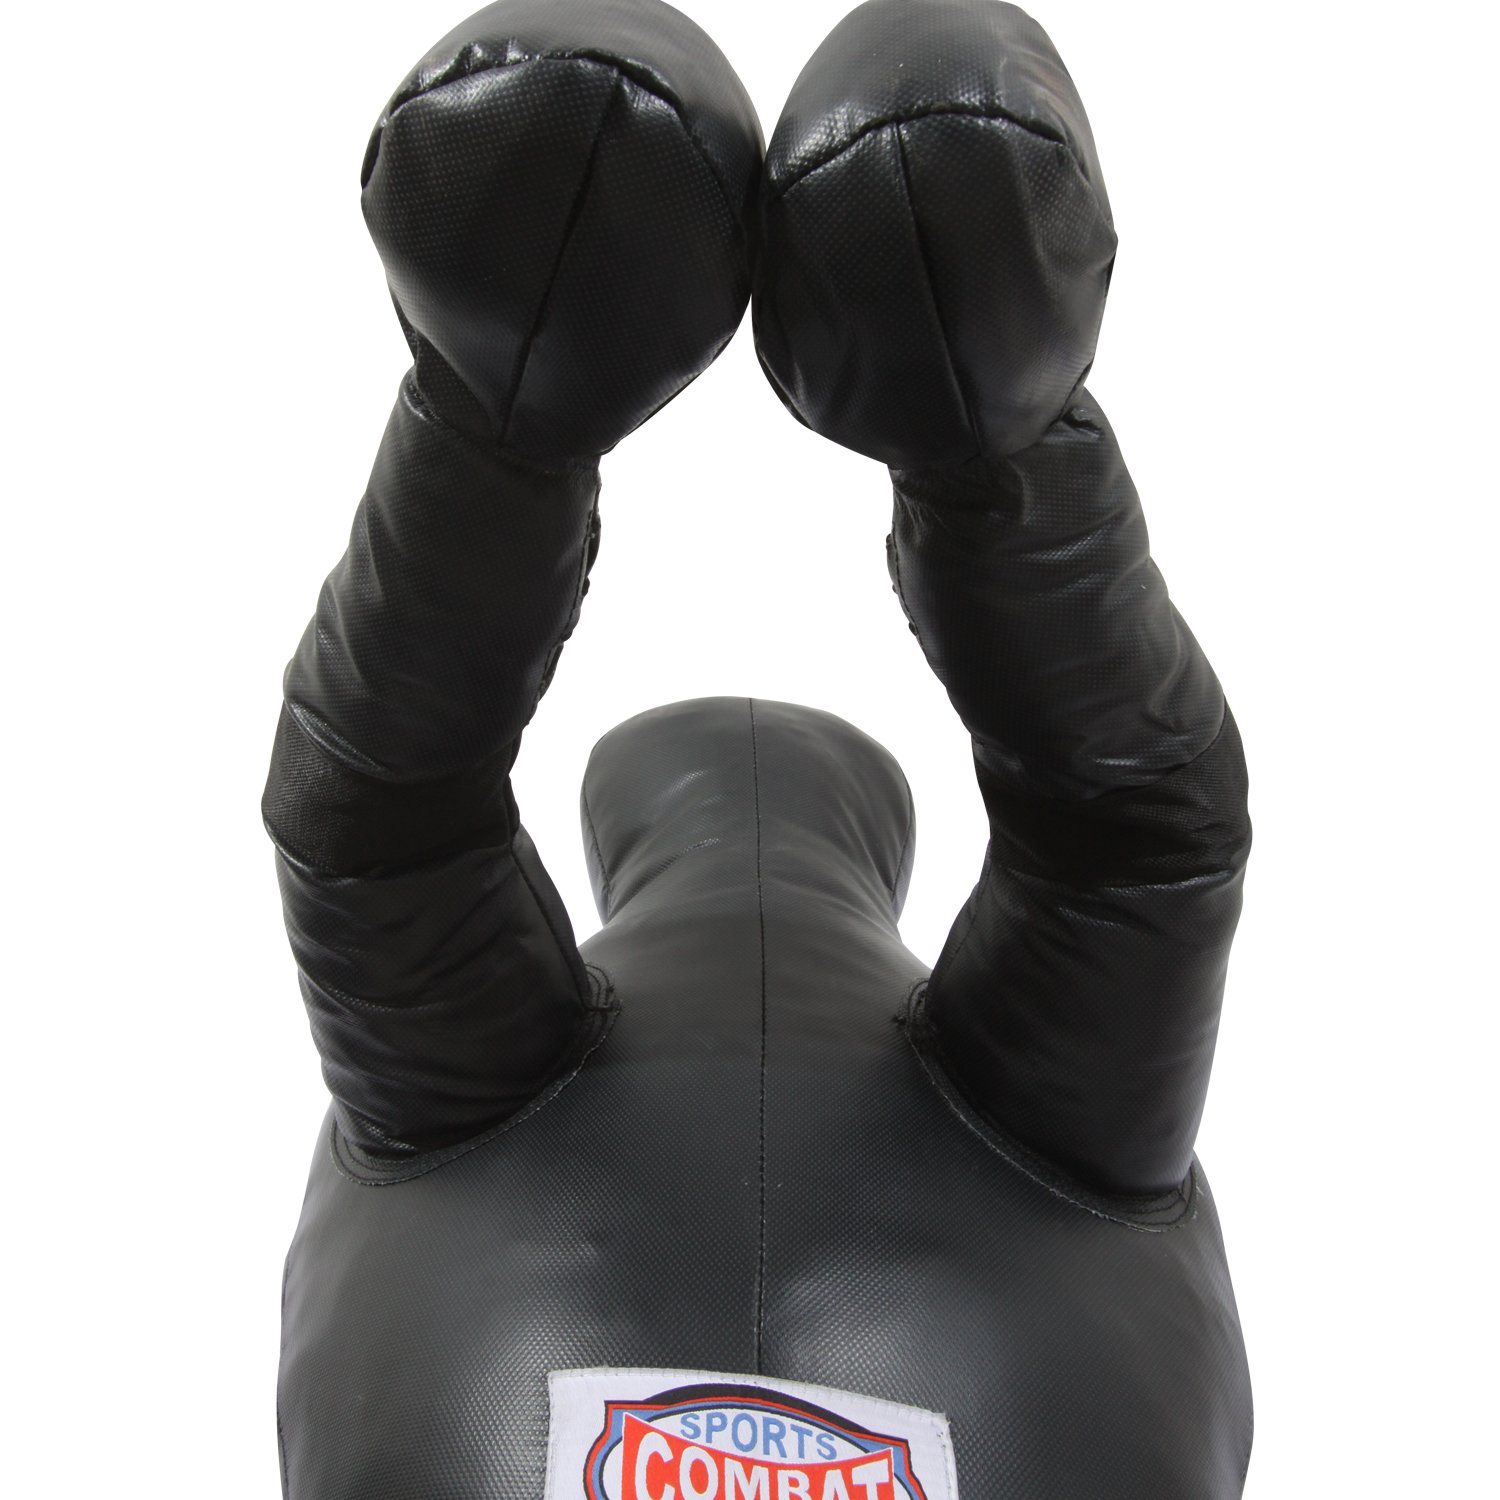 Amazon.com: Combat Sports, guantes para grappling de 70, 90 ...